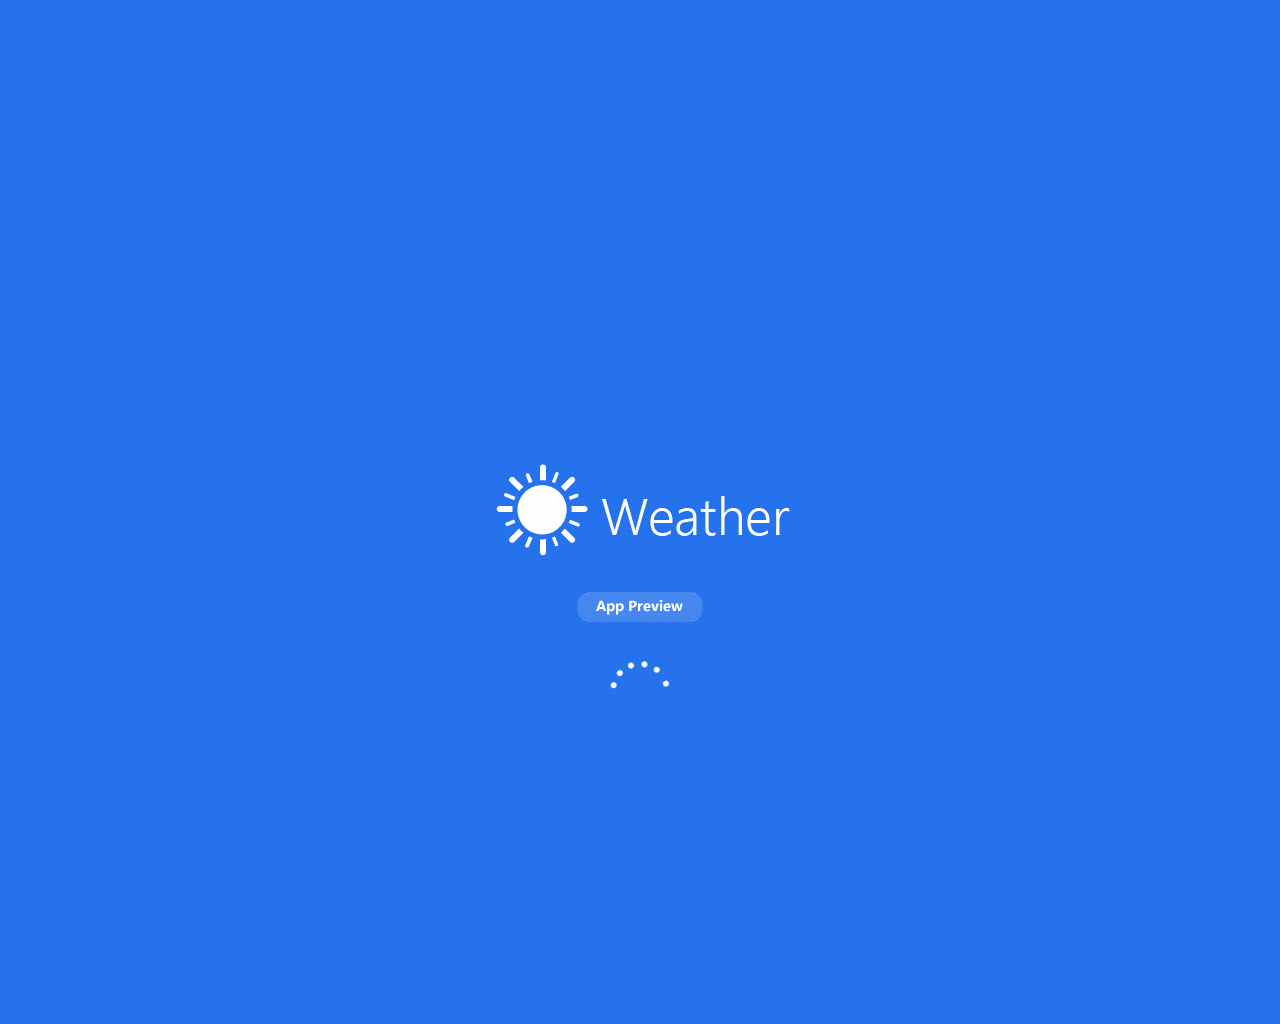 Weather pour Windows 10 3.6